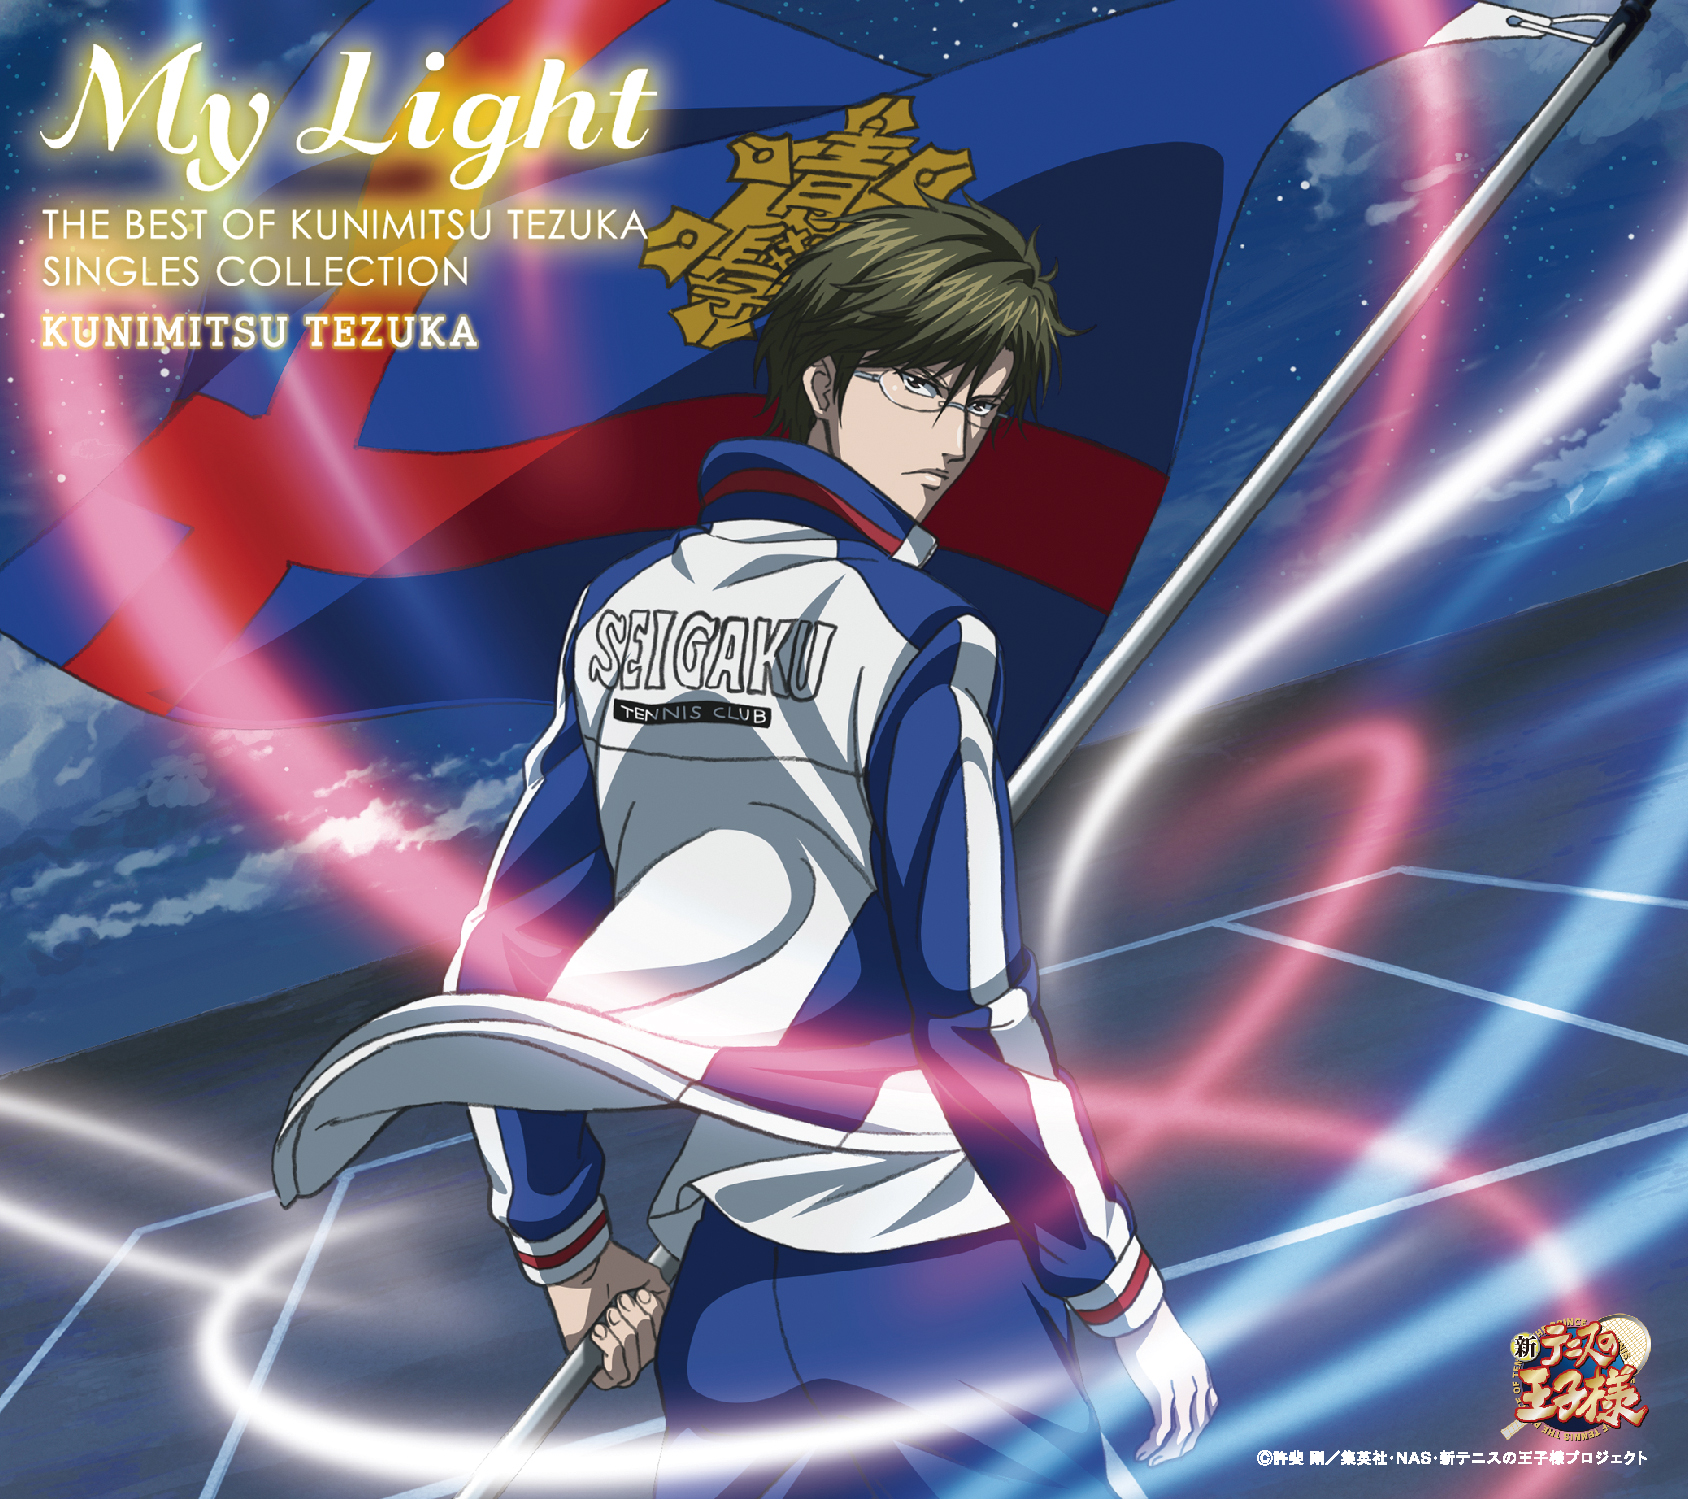 「My Light-THE BEST OF KUNIMITSU TEZUKA SINGLES COLLECTION-(初回限定盤)」手塚国光